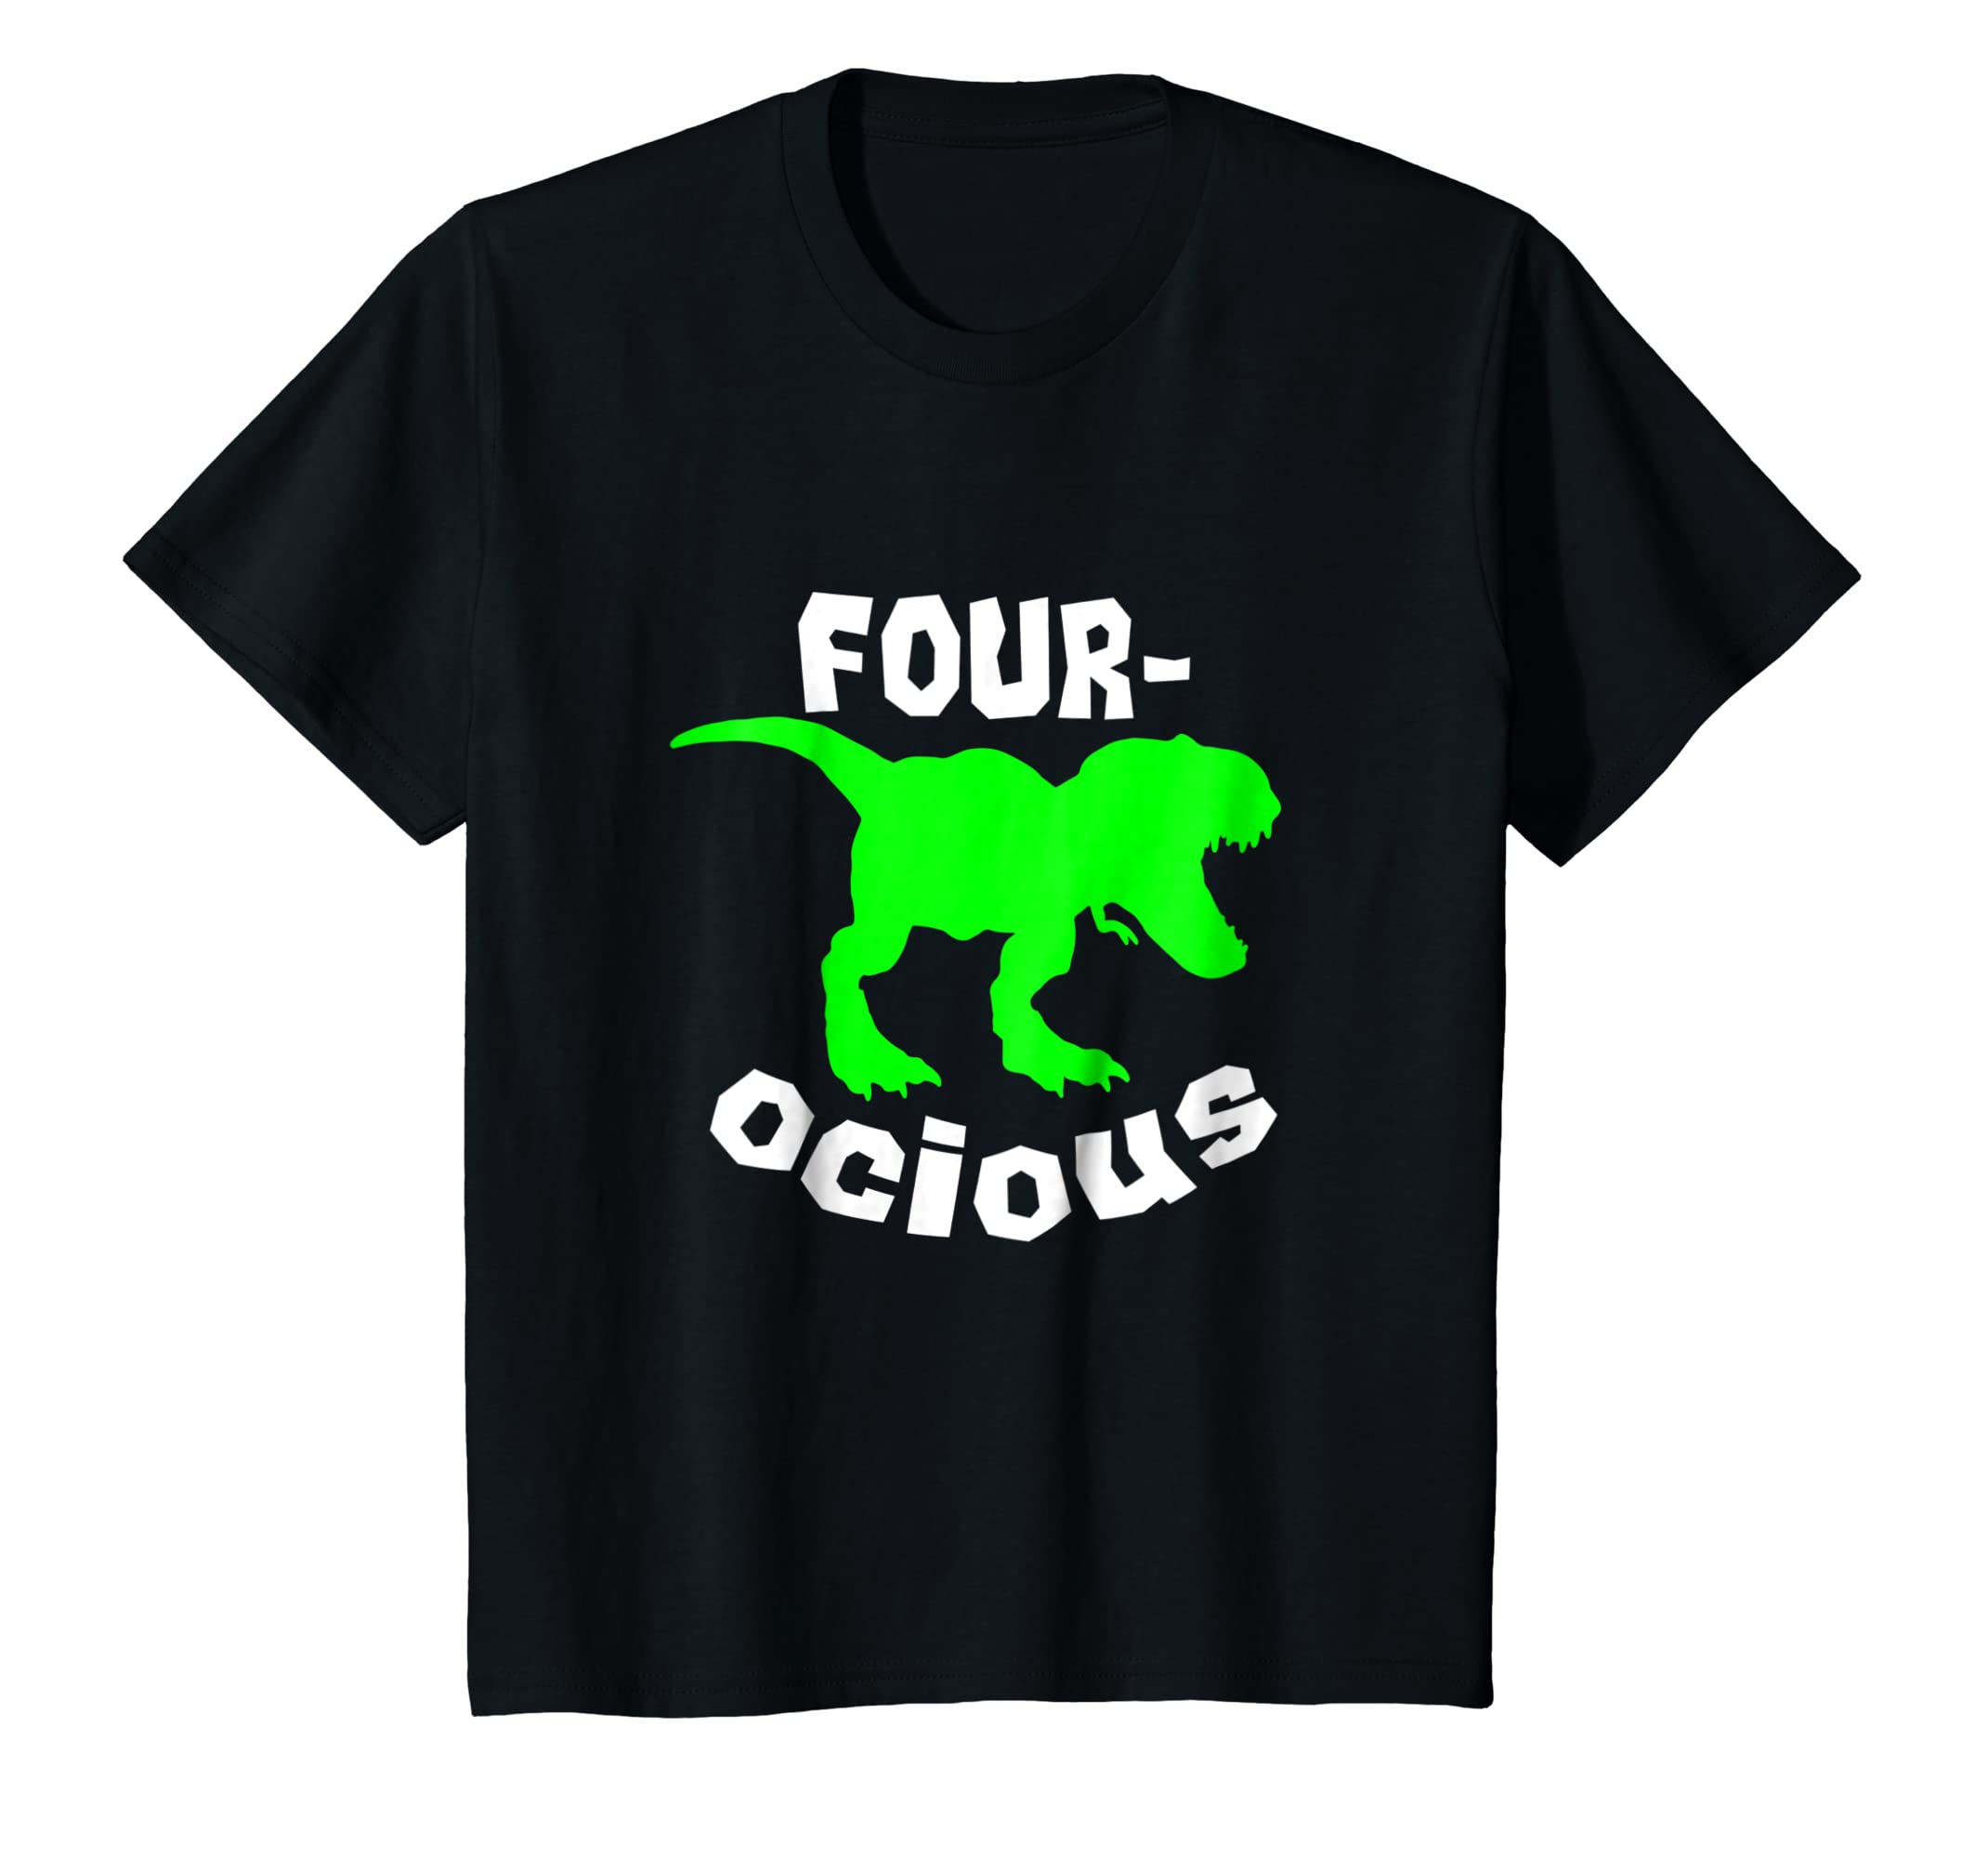 982140f6ca3 Amazon.com  Kids 4th Birthday Shirt Dinosaur Party 4 Year Old Boy Gift  Tshirt  Clothing